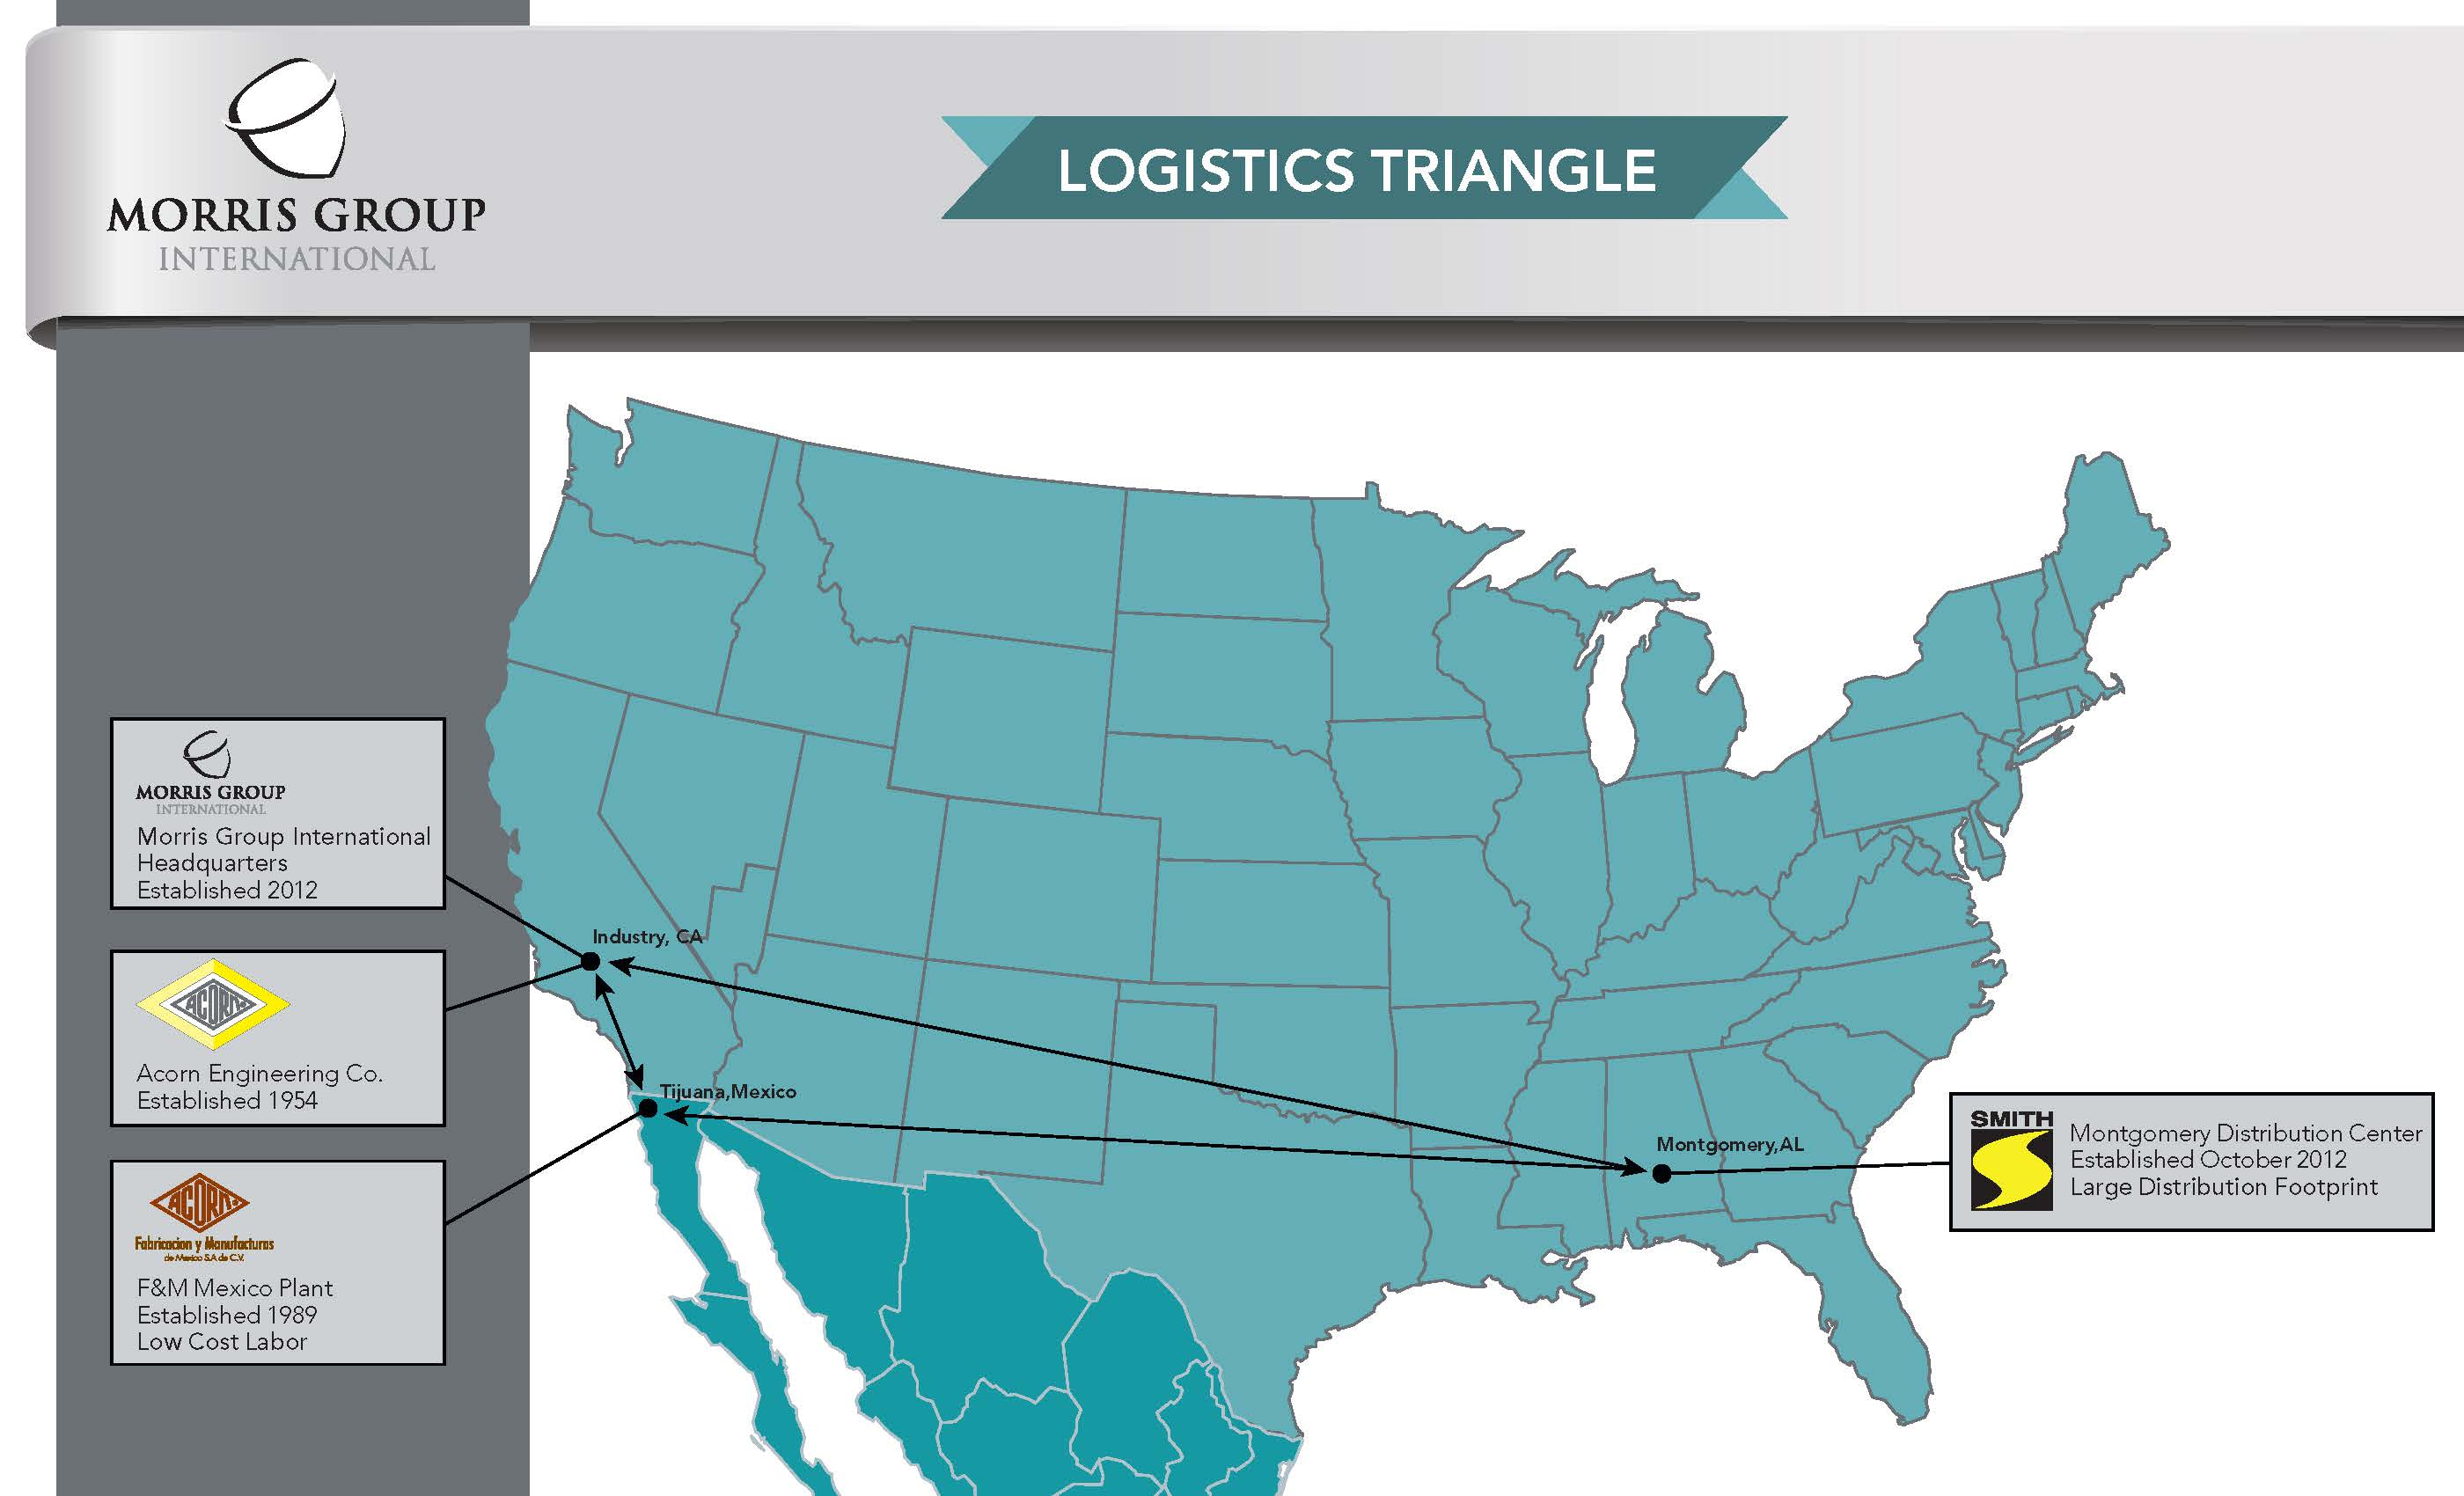 Logistics Triangle